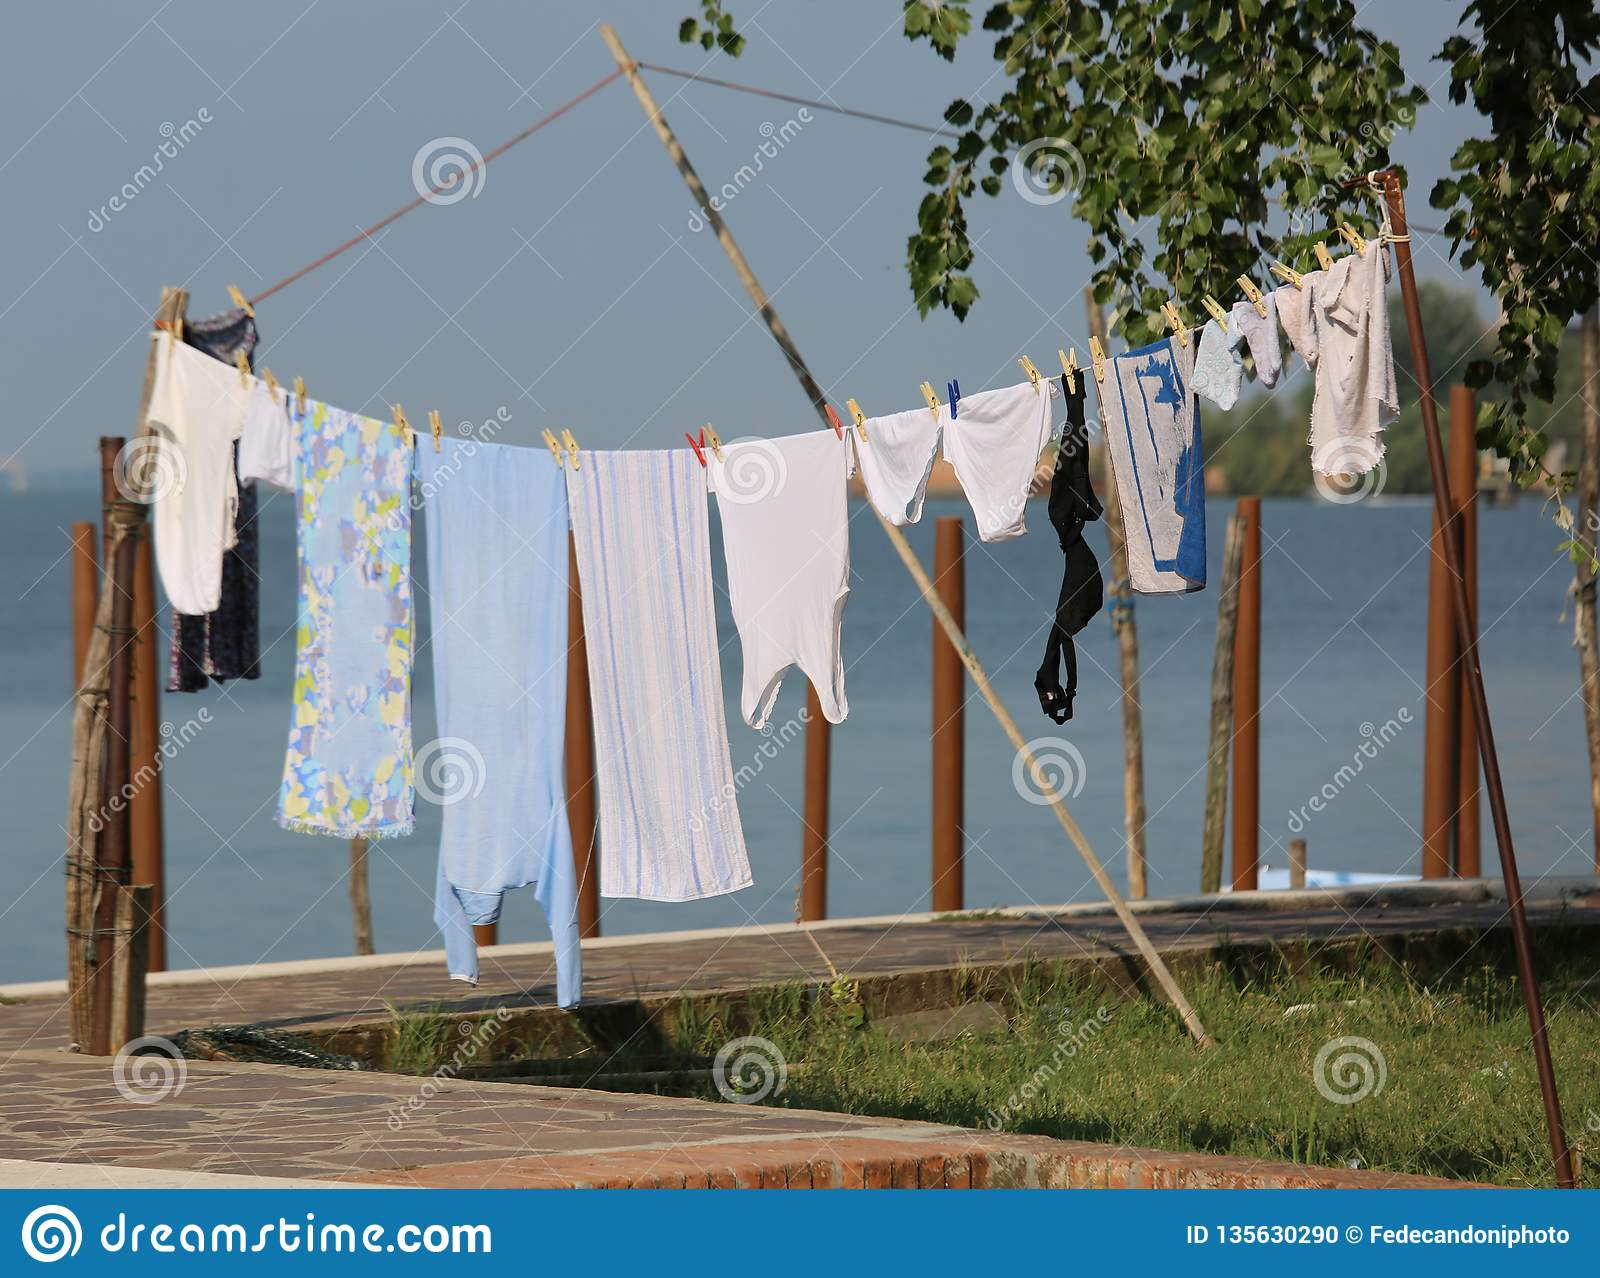 cloths-hung-out-to-dry-outdoors-wet-135630290.jpg